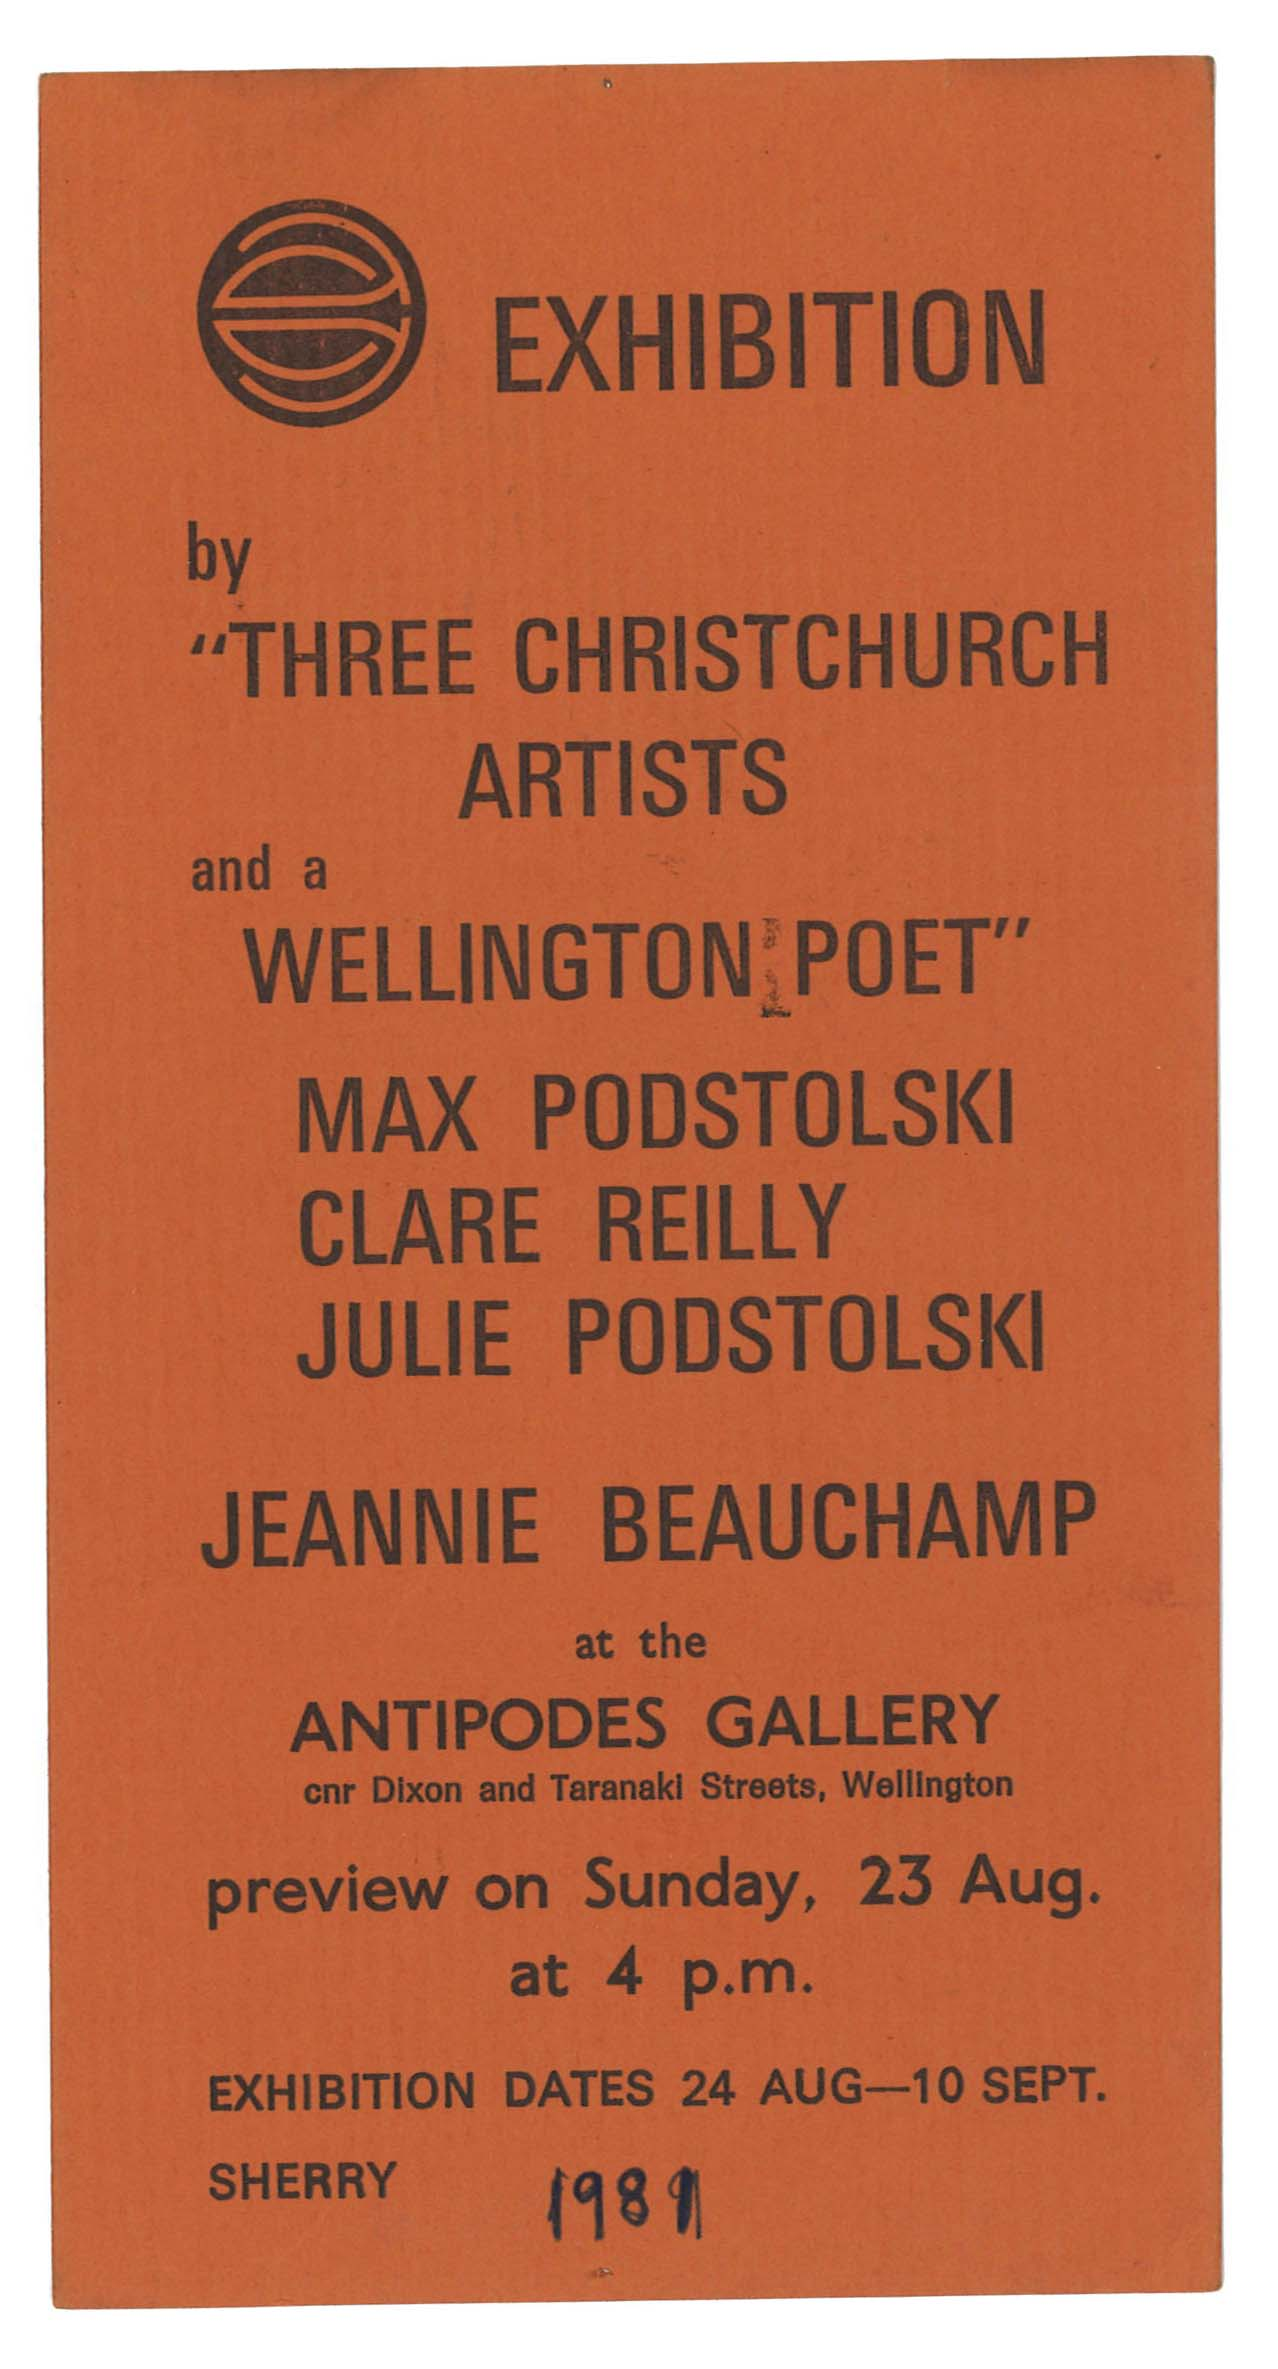 Archive of exhibition invitations julie podstolski abstract three christchurch artists and a wellington poet antipodes gallery wellington stopboris Choice Image